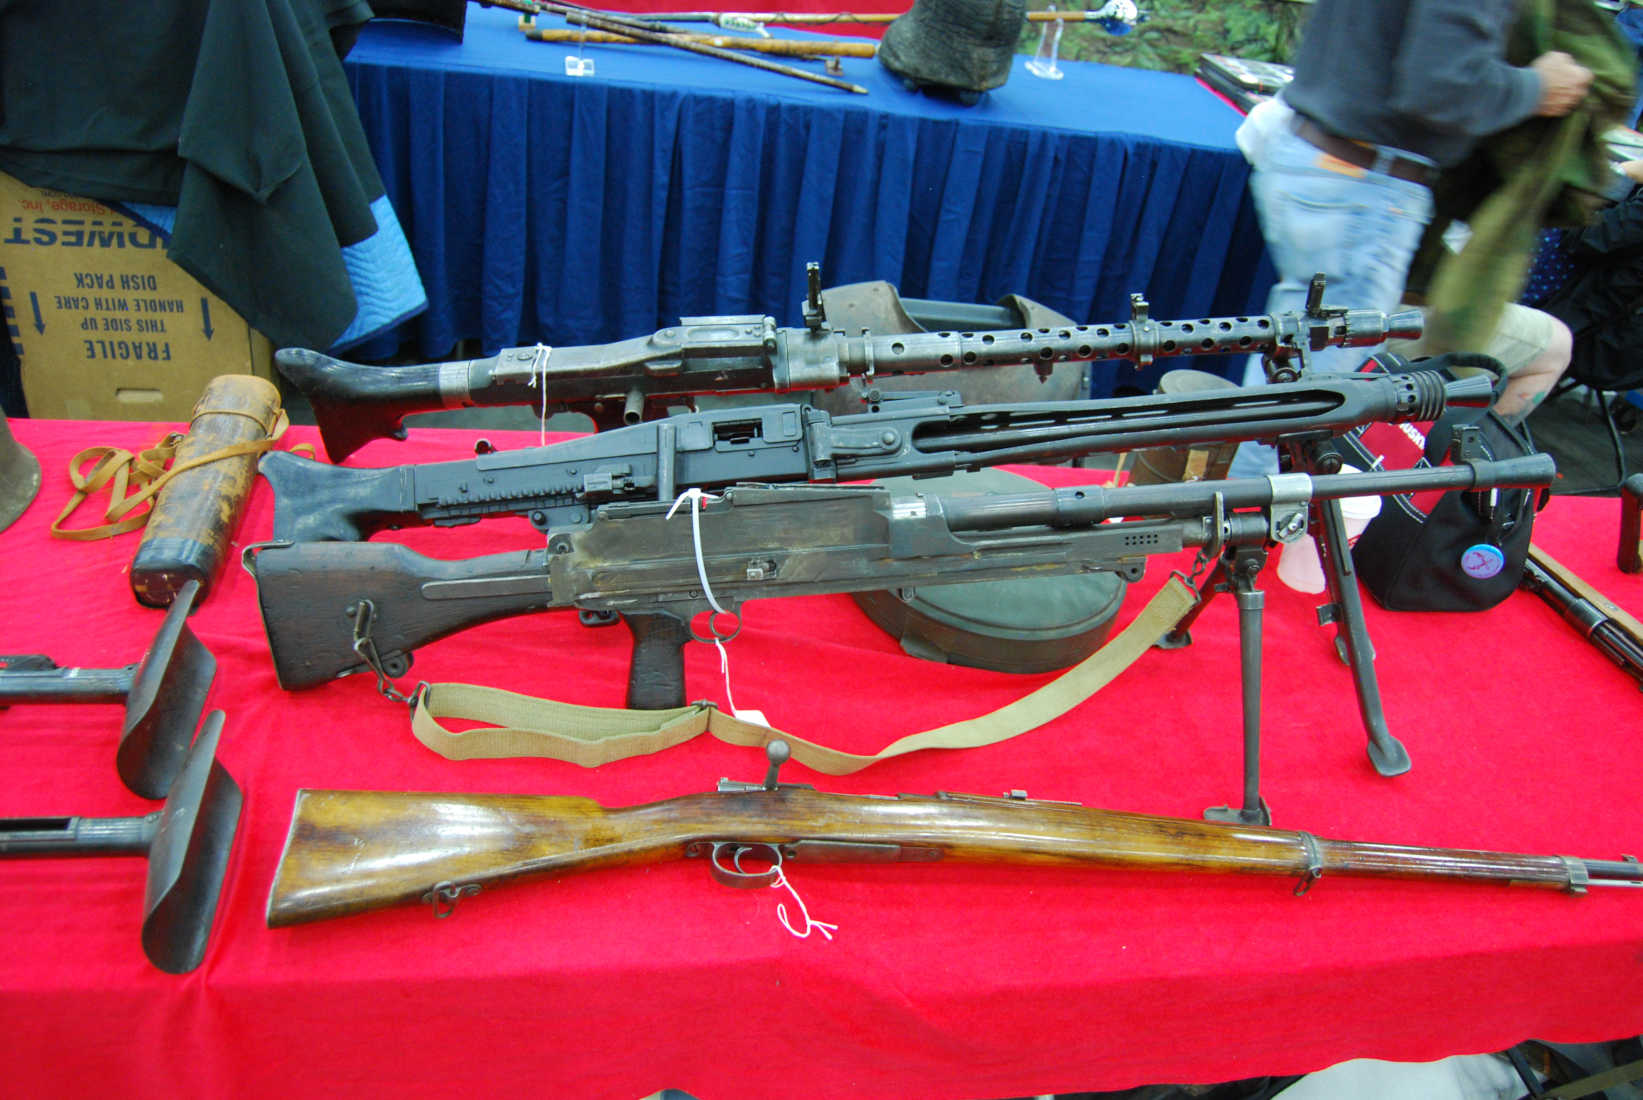 The Ohio Valley Military Society's Show Of Shows: 'Where Military History Meets Collecting'